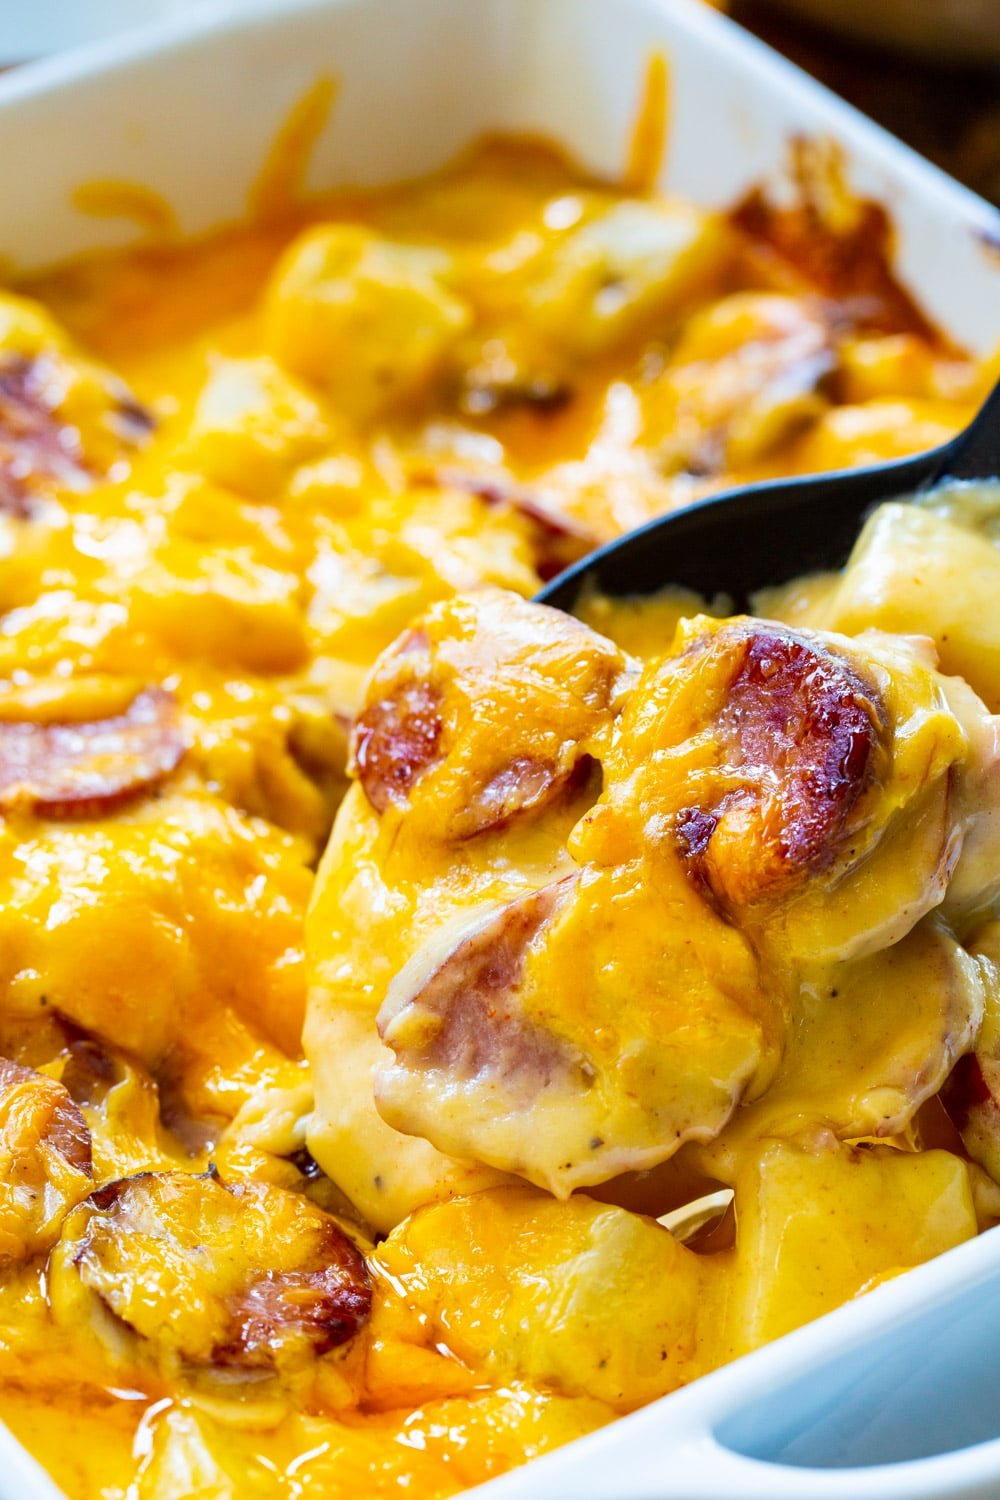 Spoon scooping up Cheesy Potatoes with Smoked Sausage